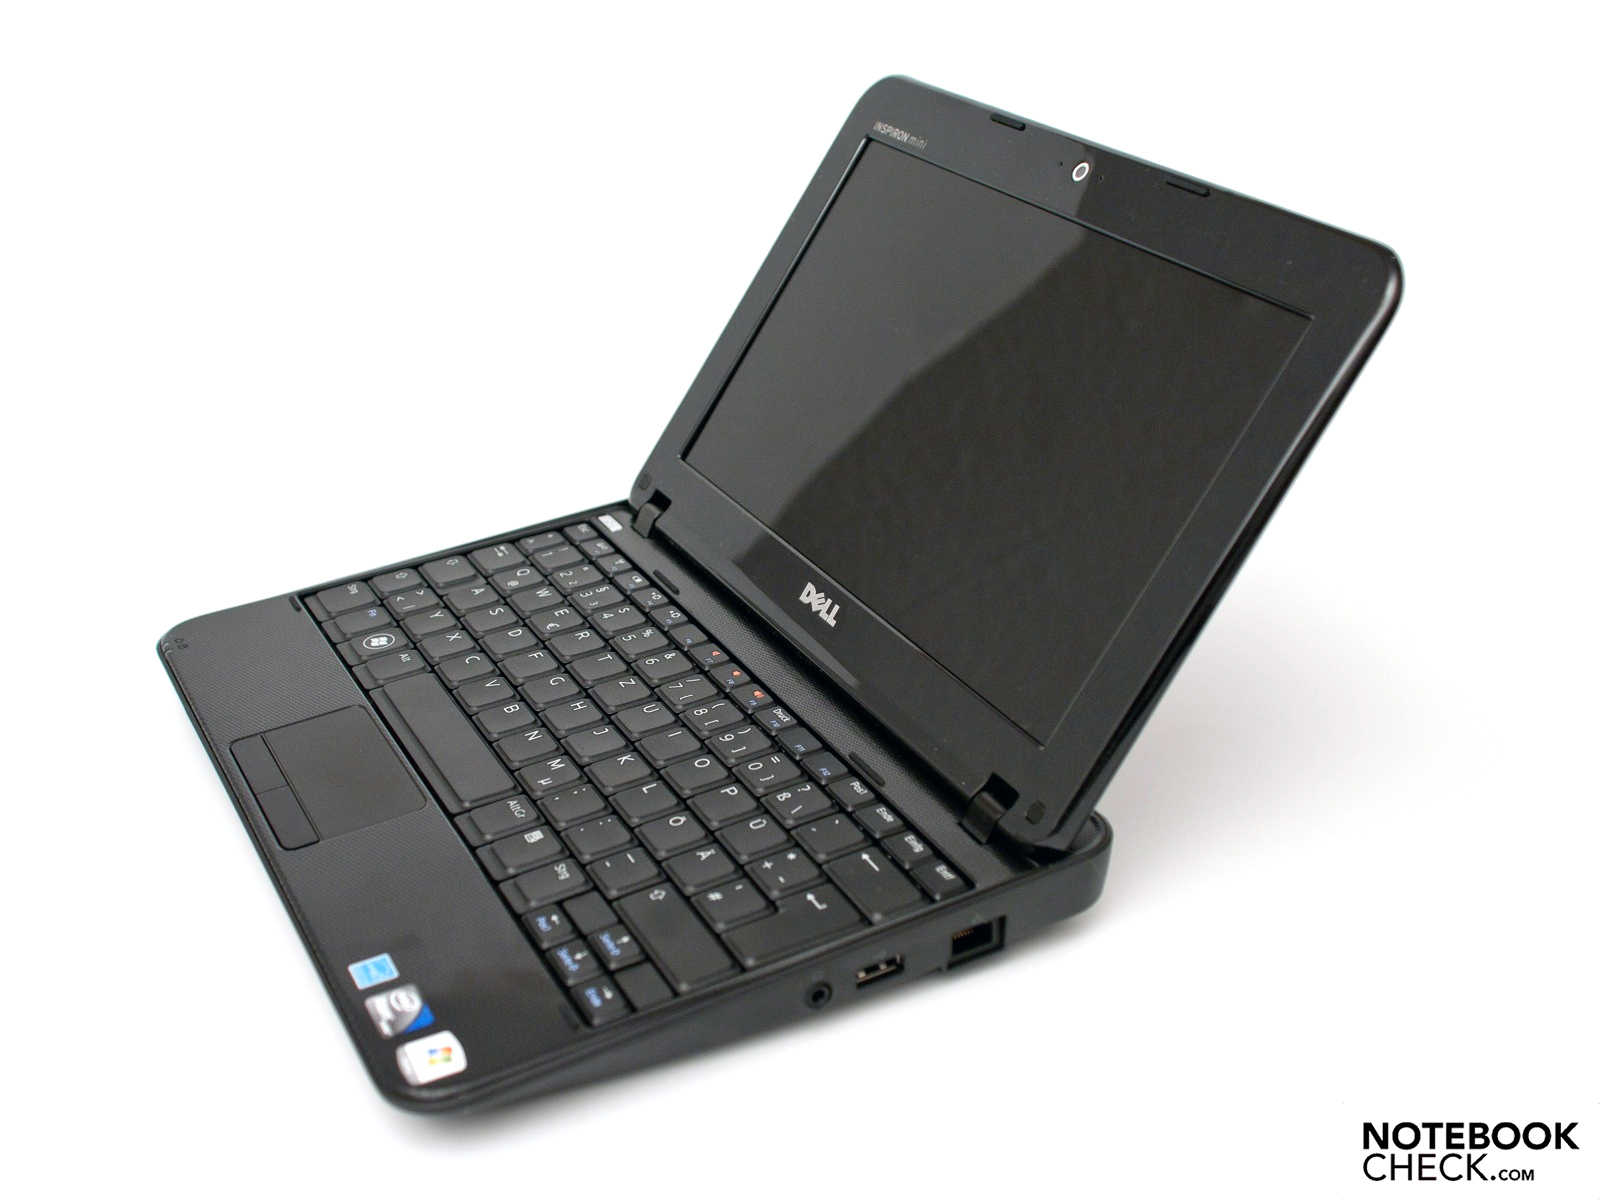 review dell inspiron mini 1018 netbook notebookcheck net reviews rh notebookcheck net dell inspiron mini 1018 service manual dell inspiron mini 1018 service manual